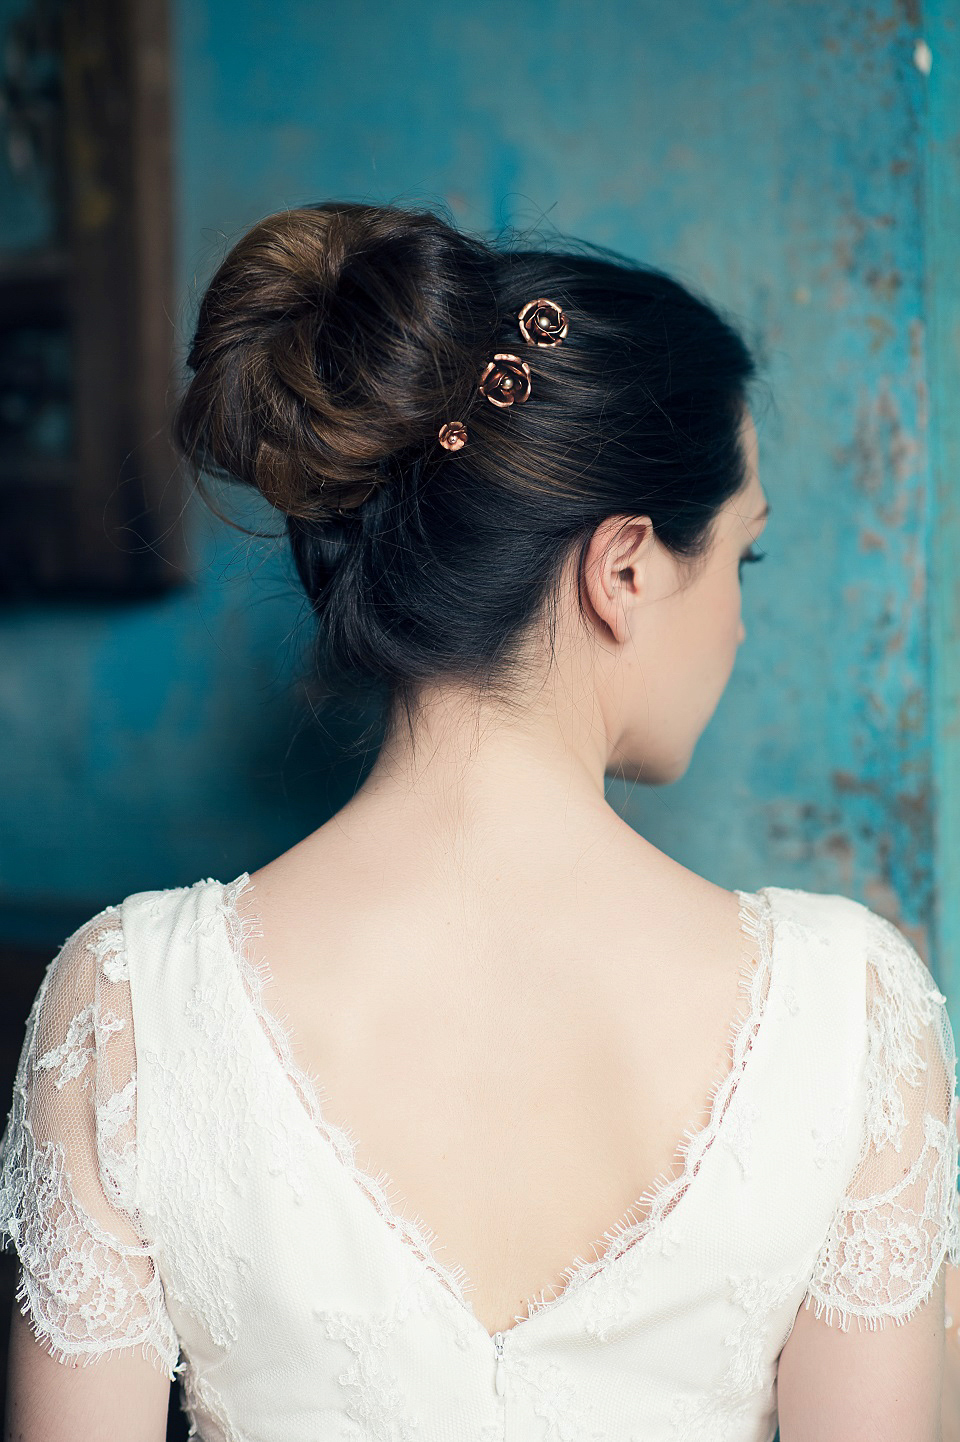 Natures Diadem By Cherished An Ethereal New Collection